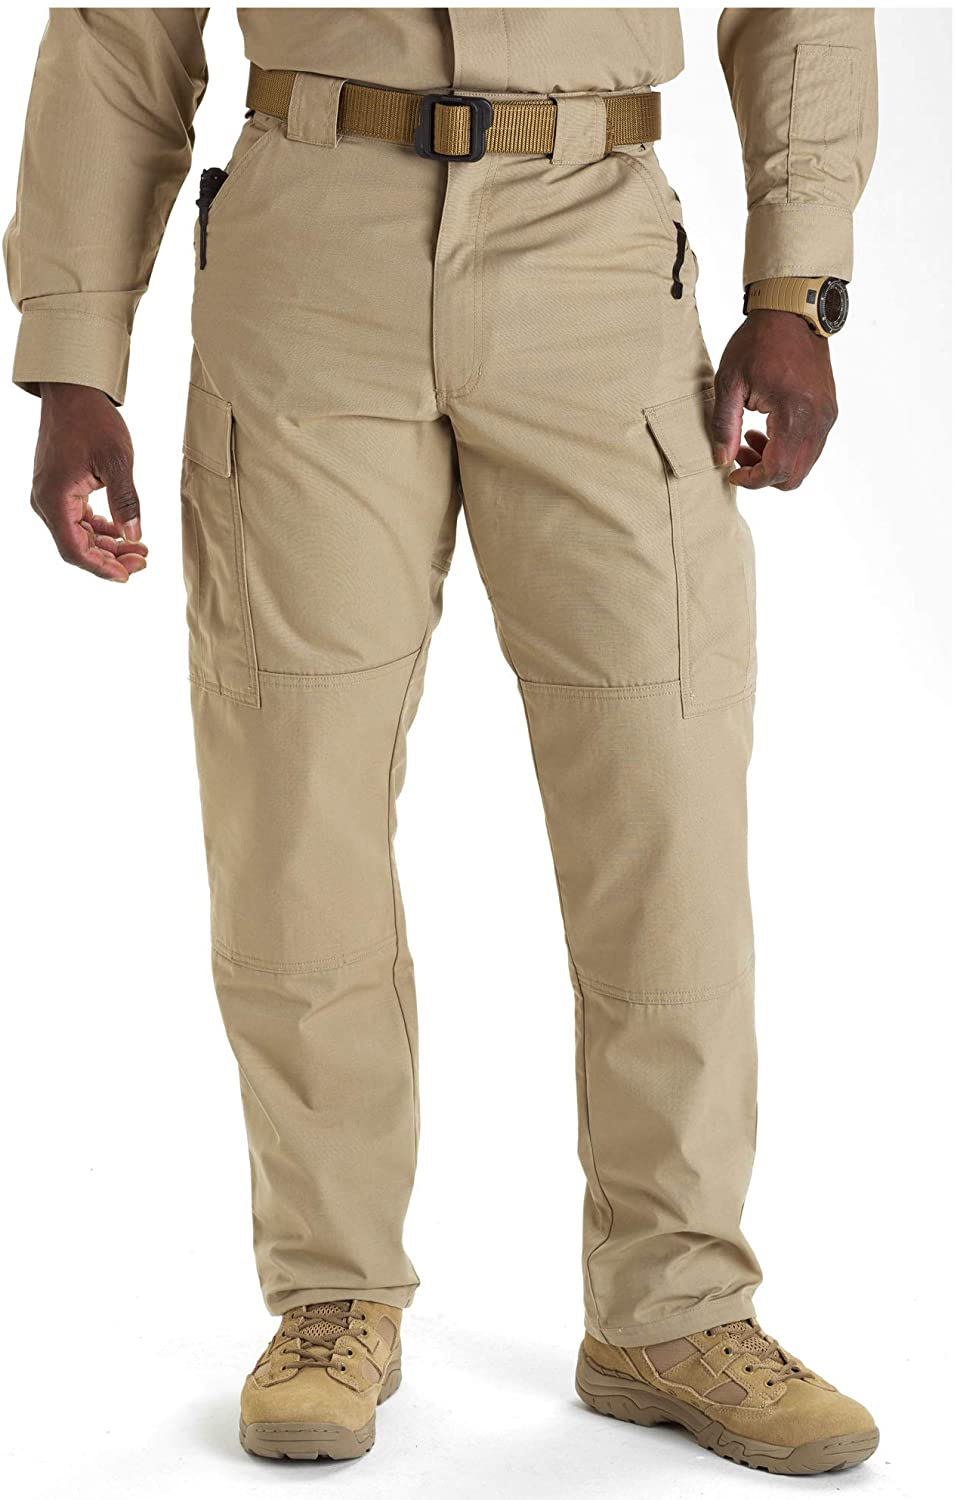 5.11 Tactical Ripstop TDU Adjustable Lightweight Style 74003 Work Pants Multi Cam 1 Pack